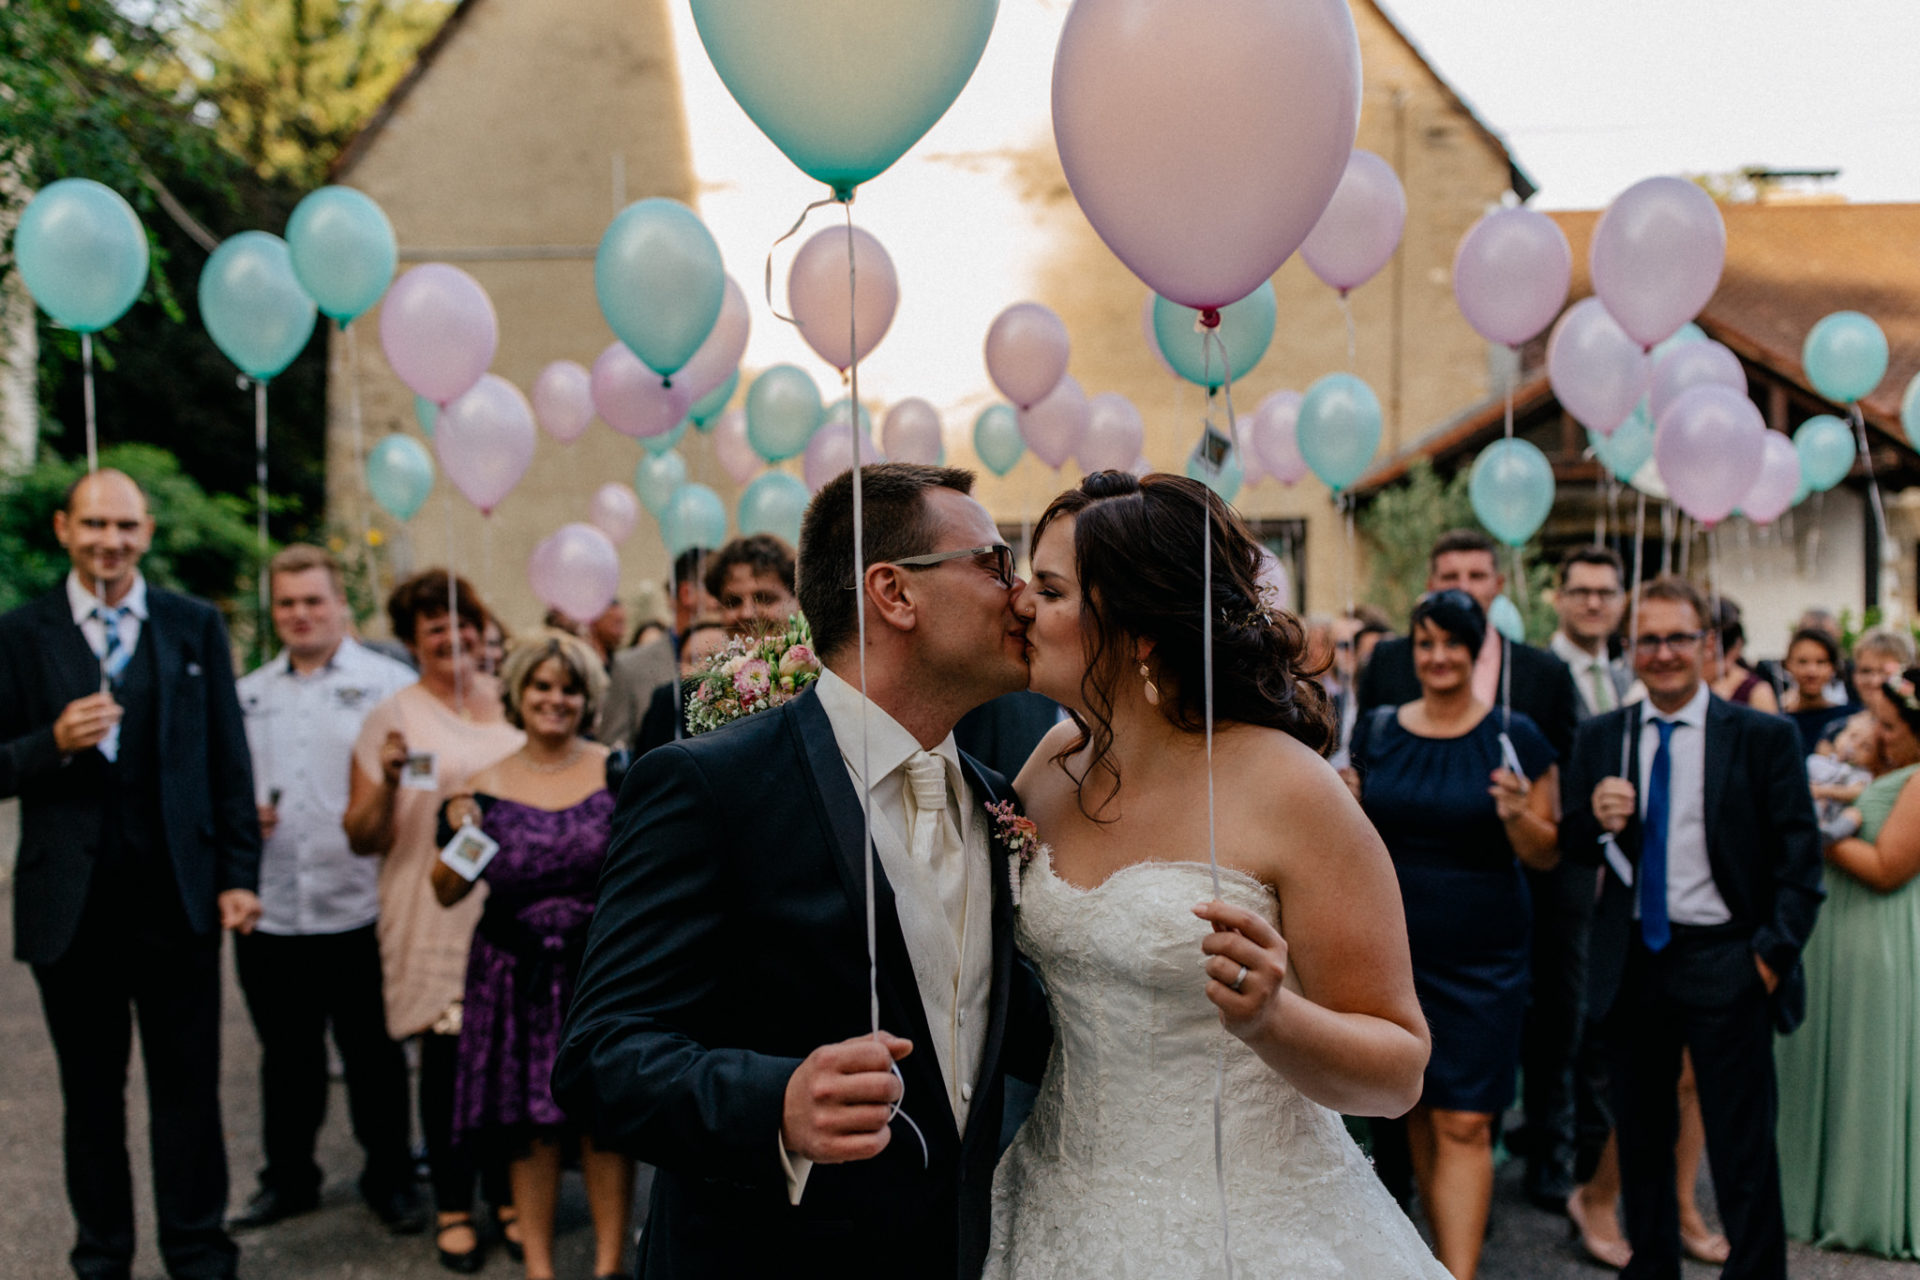 stuttgart wedding photographer-Castle Wedding Germany-Blackforest marriage-schloss heinsheim bride and groom balloon